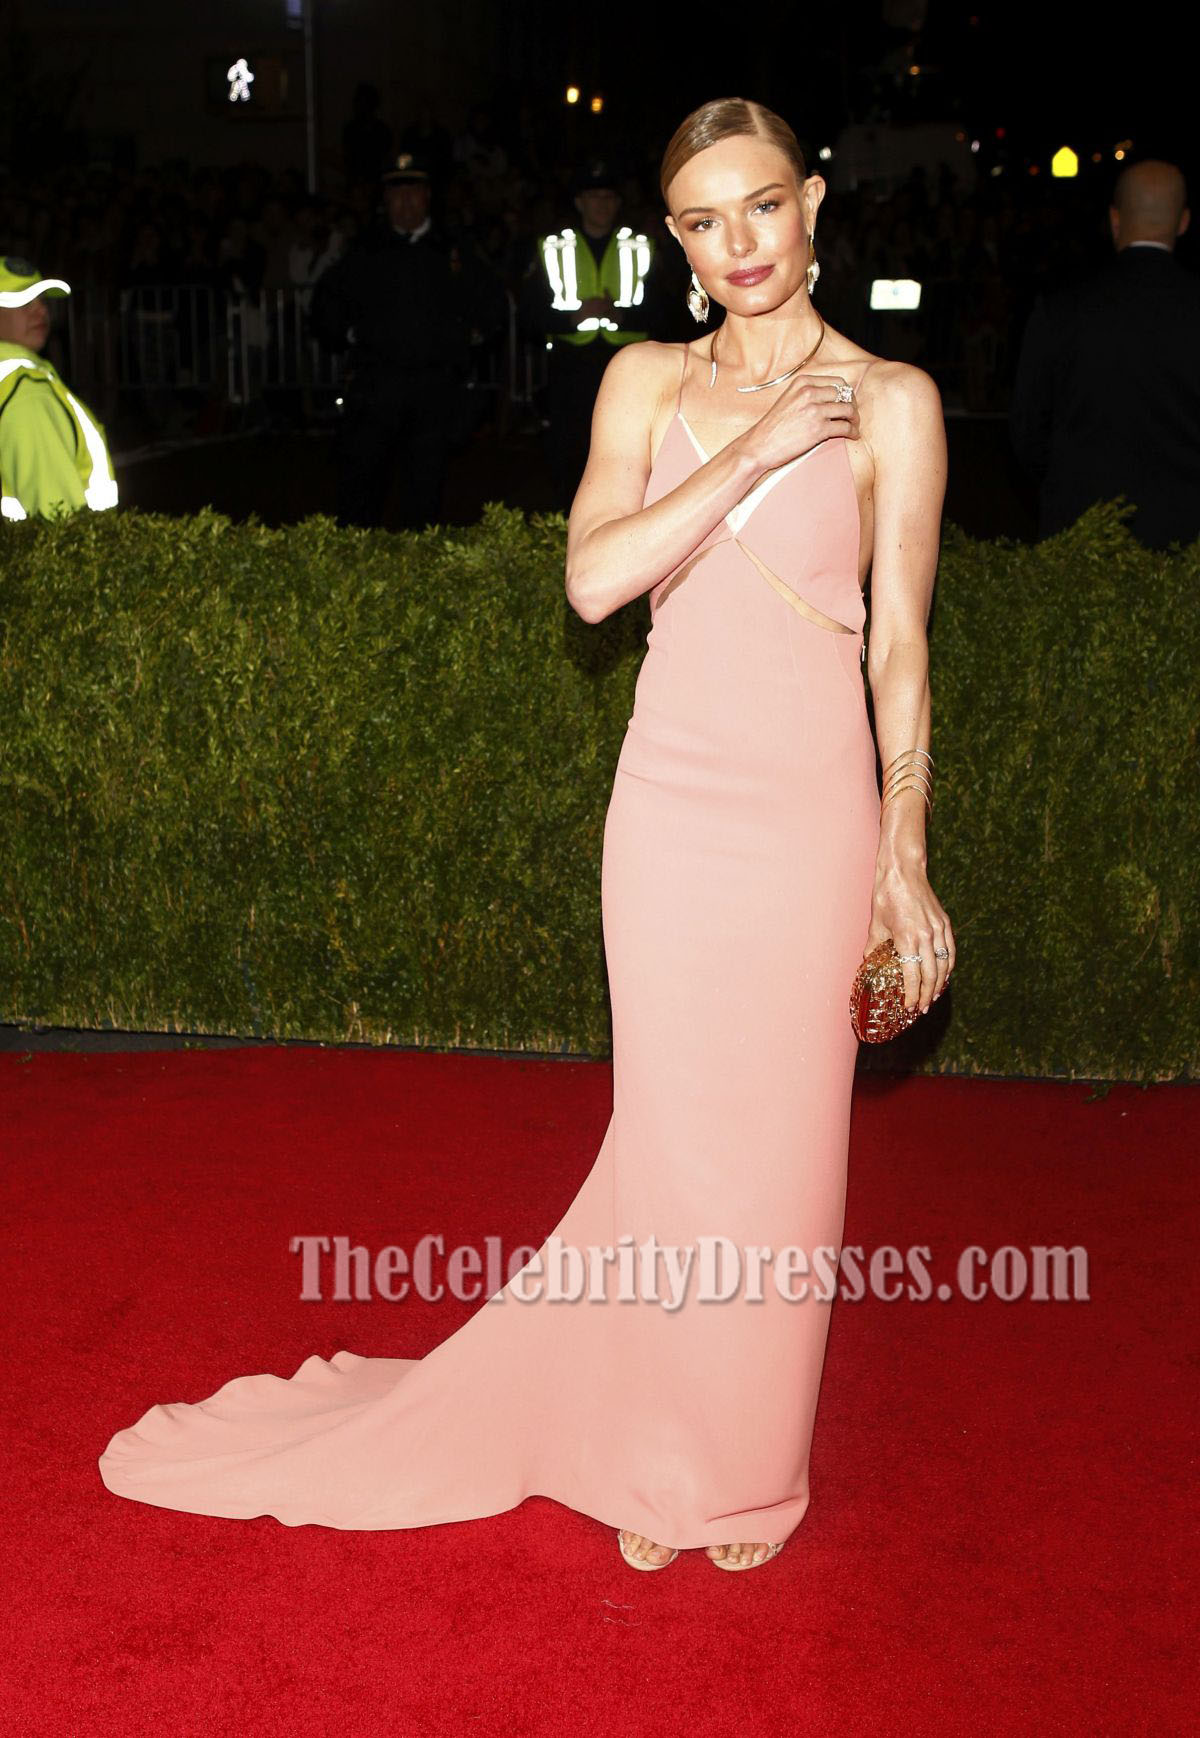 Kate Bosworth Pink Backless Prom Dress 2014 Met Gala Red Carpet ...